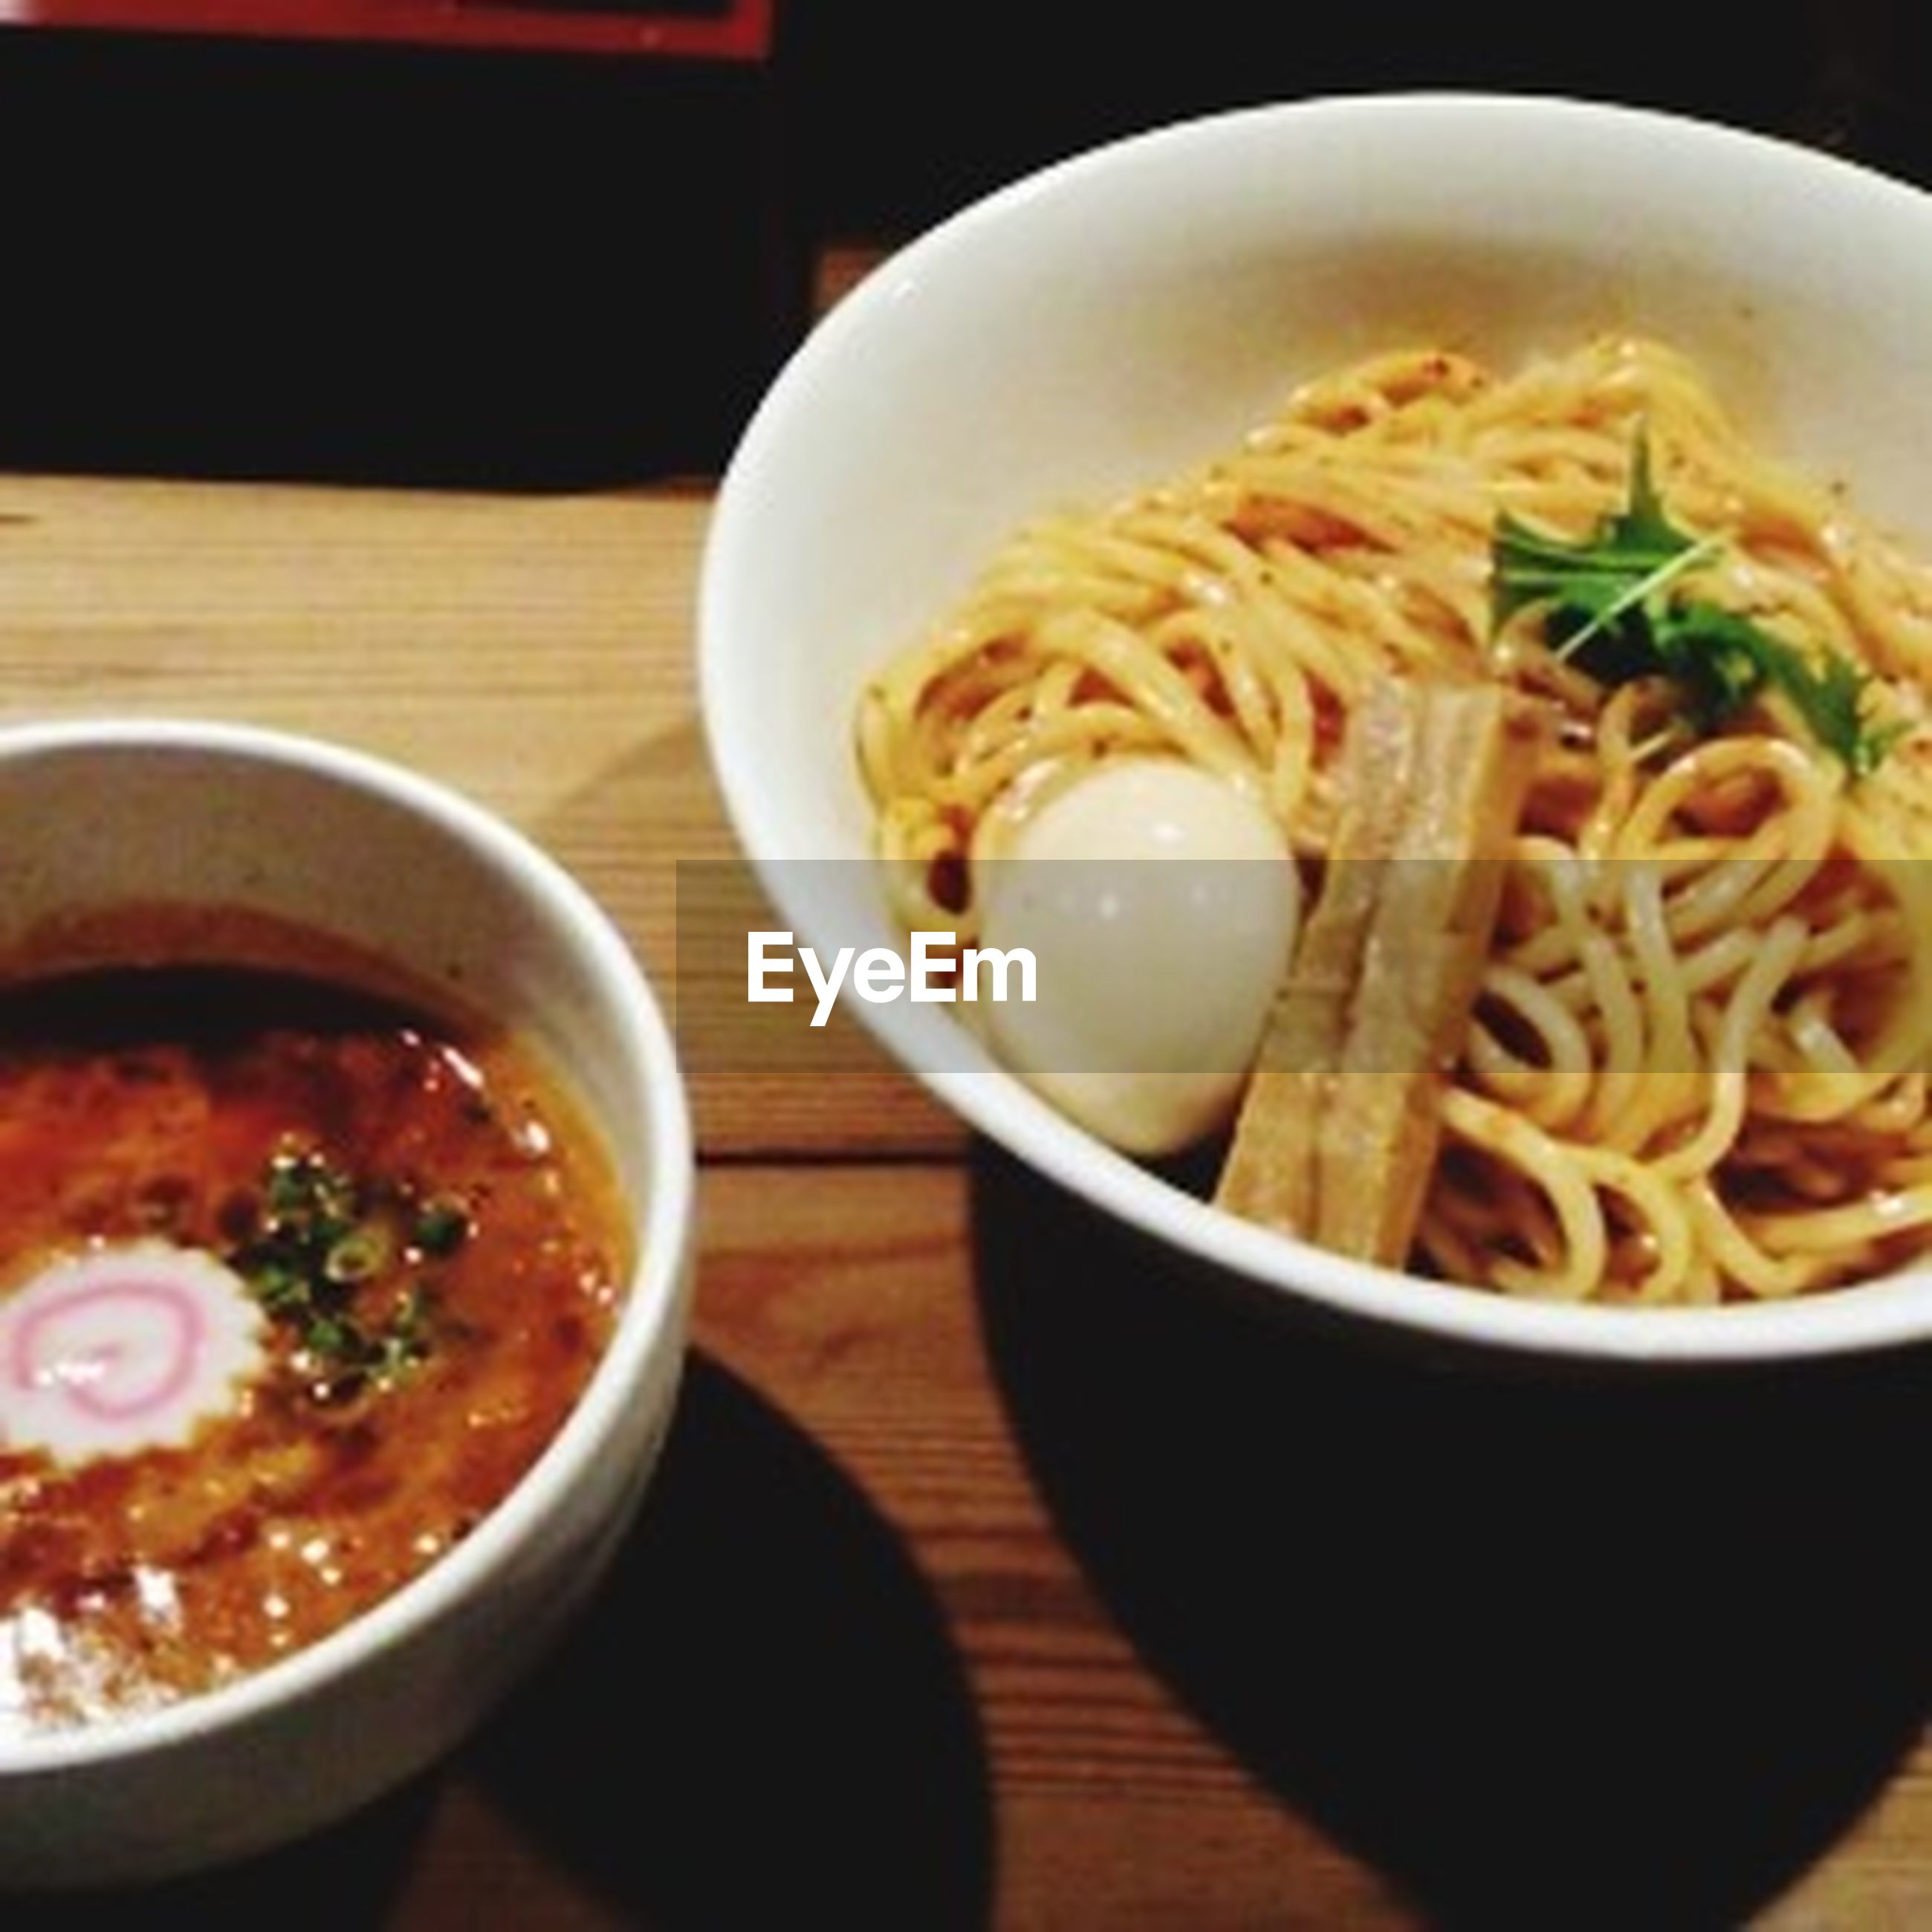 food and drink, indoors, food, ready-to-eat, freshness, meal, bowl, plate, healthy eating, close-up, still life, table, serving size, soup, noodles, cooked, indulgence, selective focus, meat, healthy lifestyle